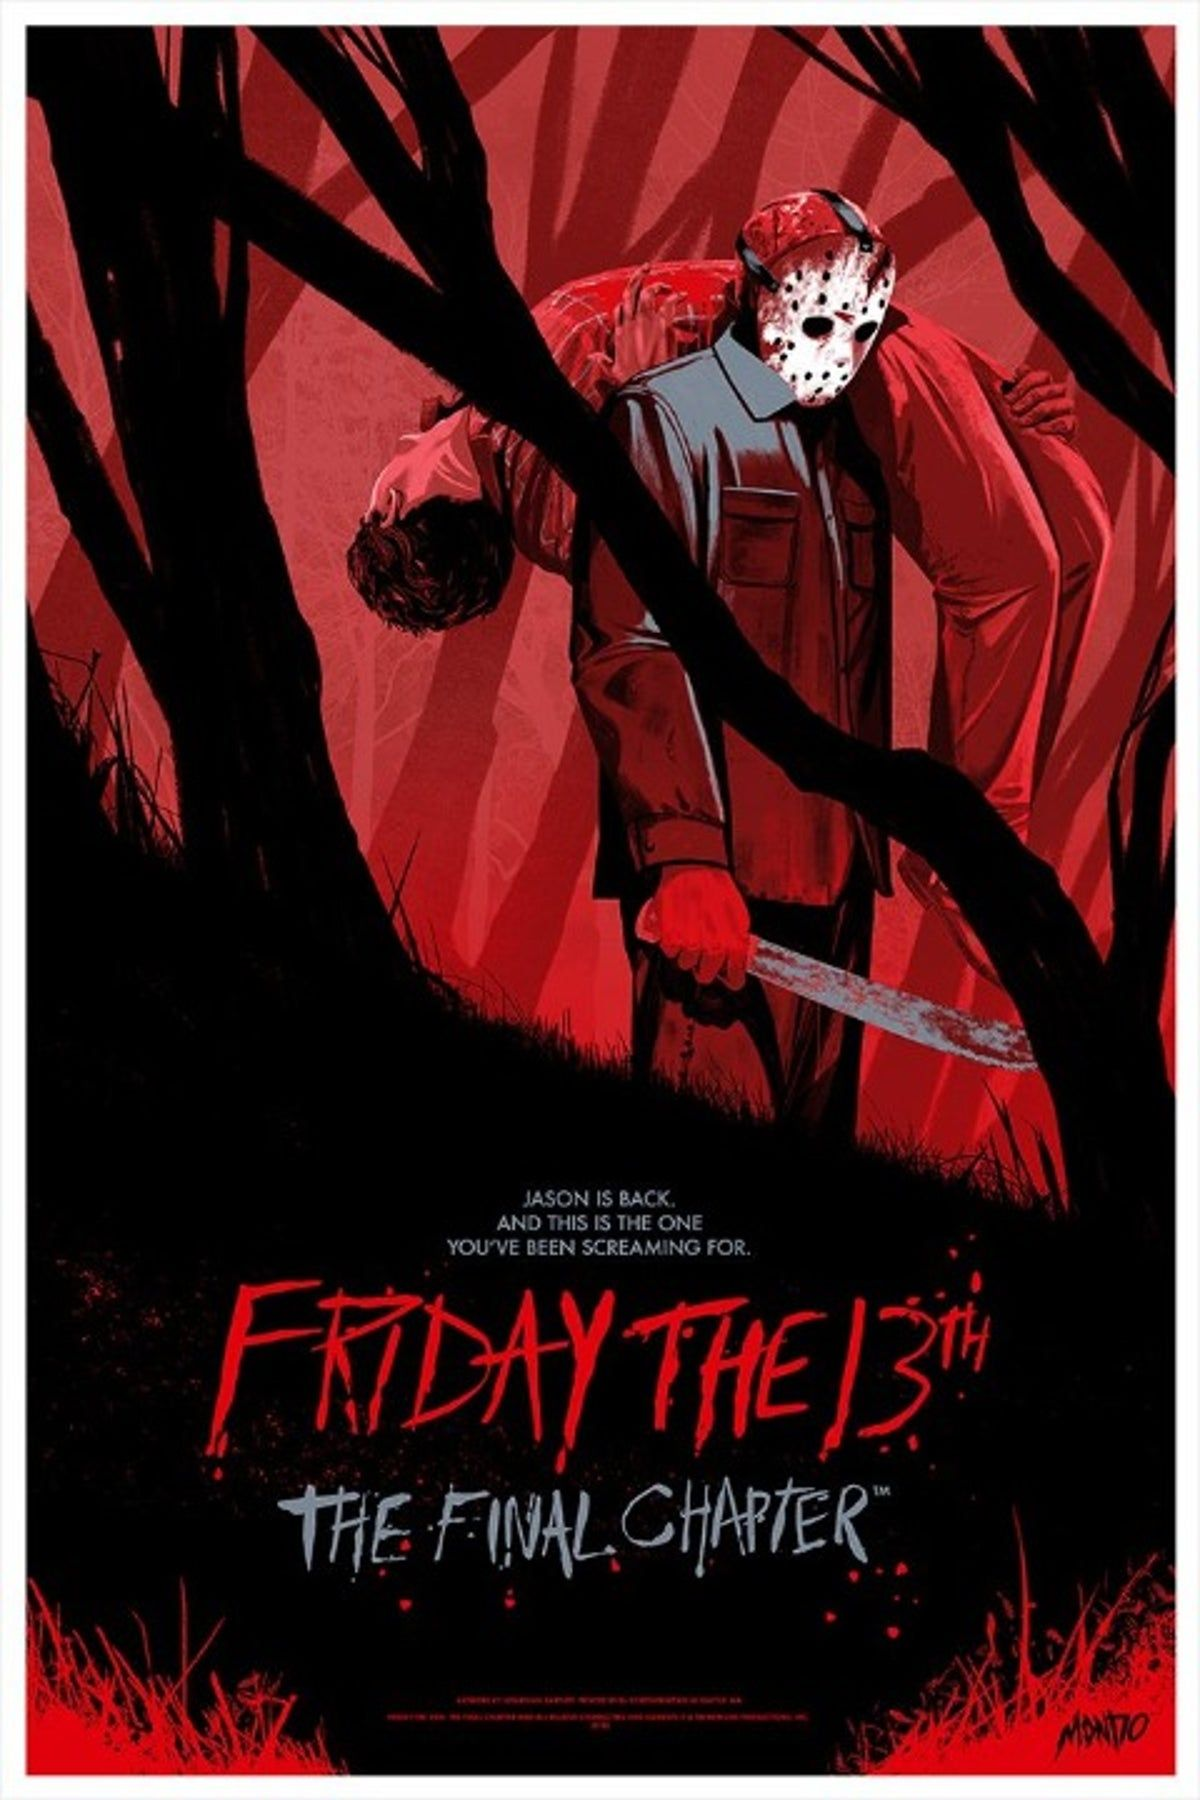 Pin by Xuel on 设计 in 2020 Horror movie posters, Friday